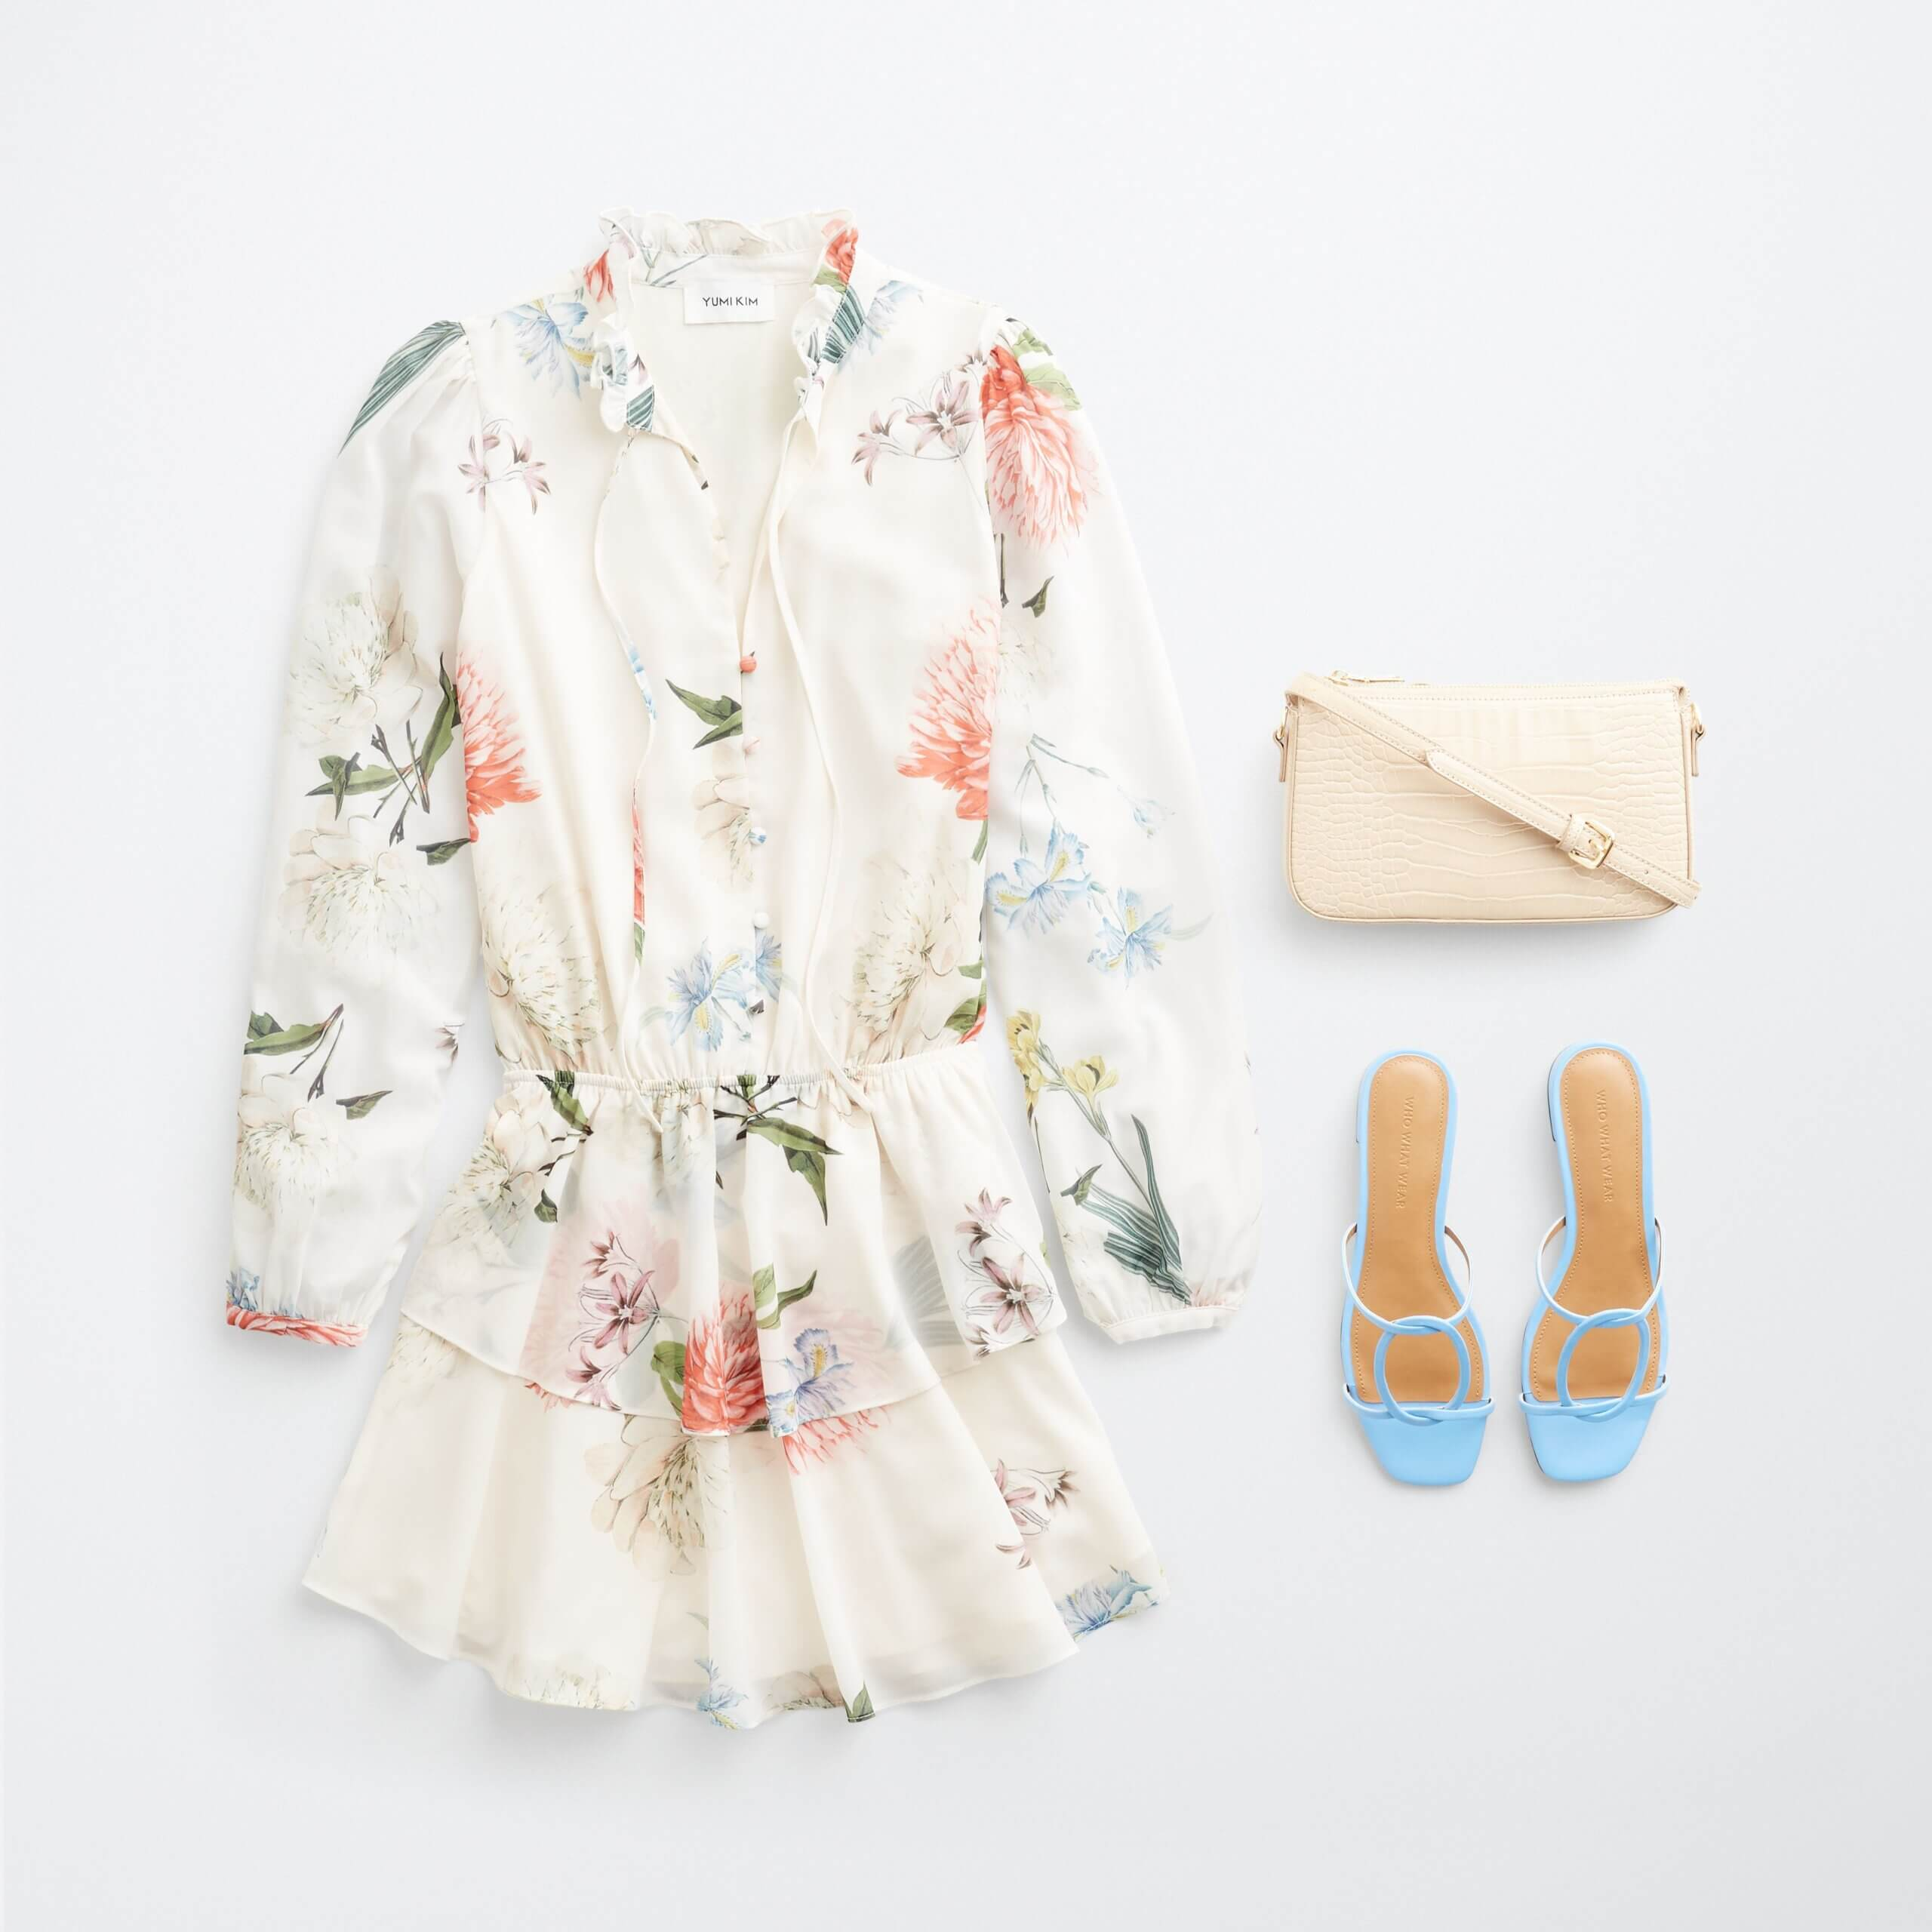 Stitch Fix women's outfit laydown featuring white floral romper, blue slide heeled sandals and cream crossbody bag.